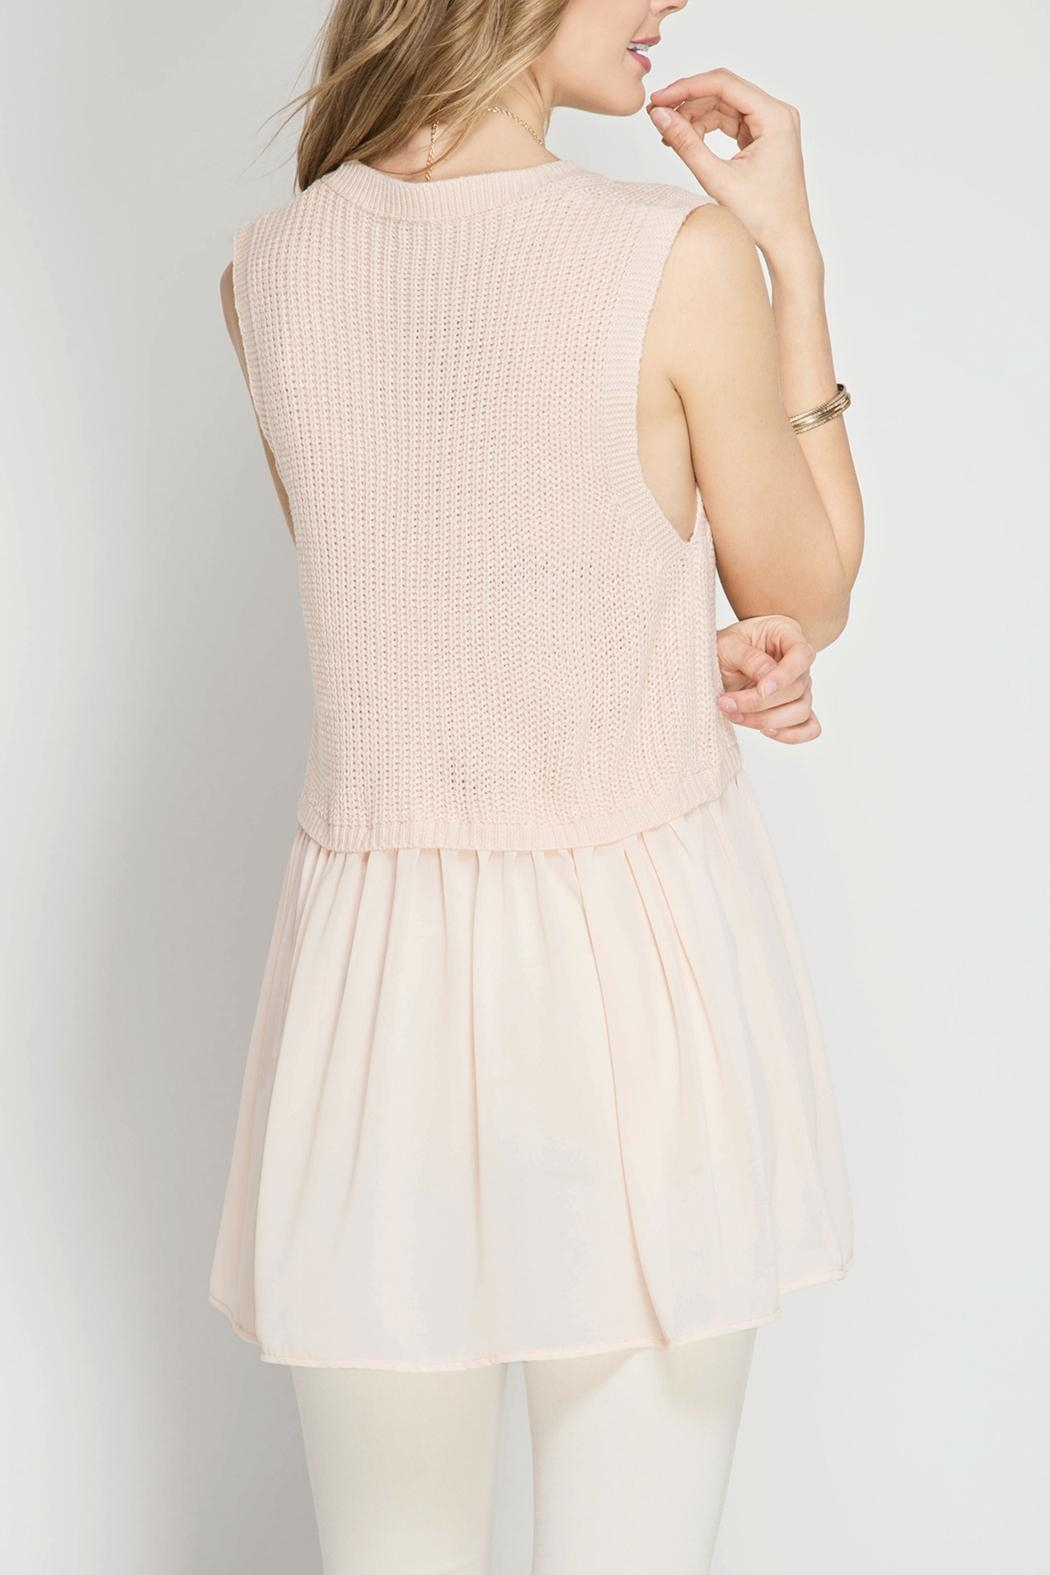 She + Sky Blush Sweater Tank Top - Front Full Image